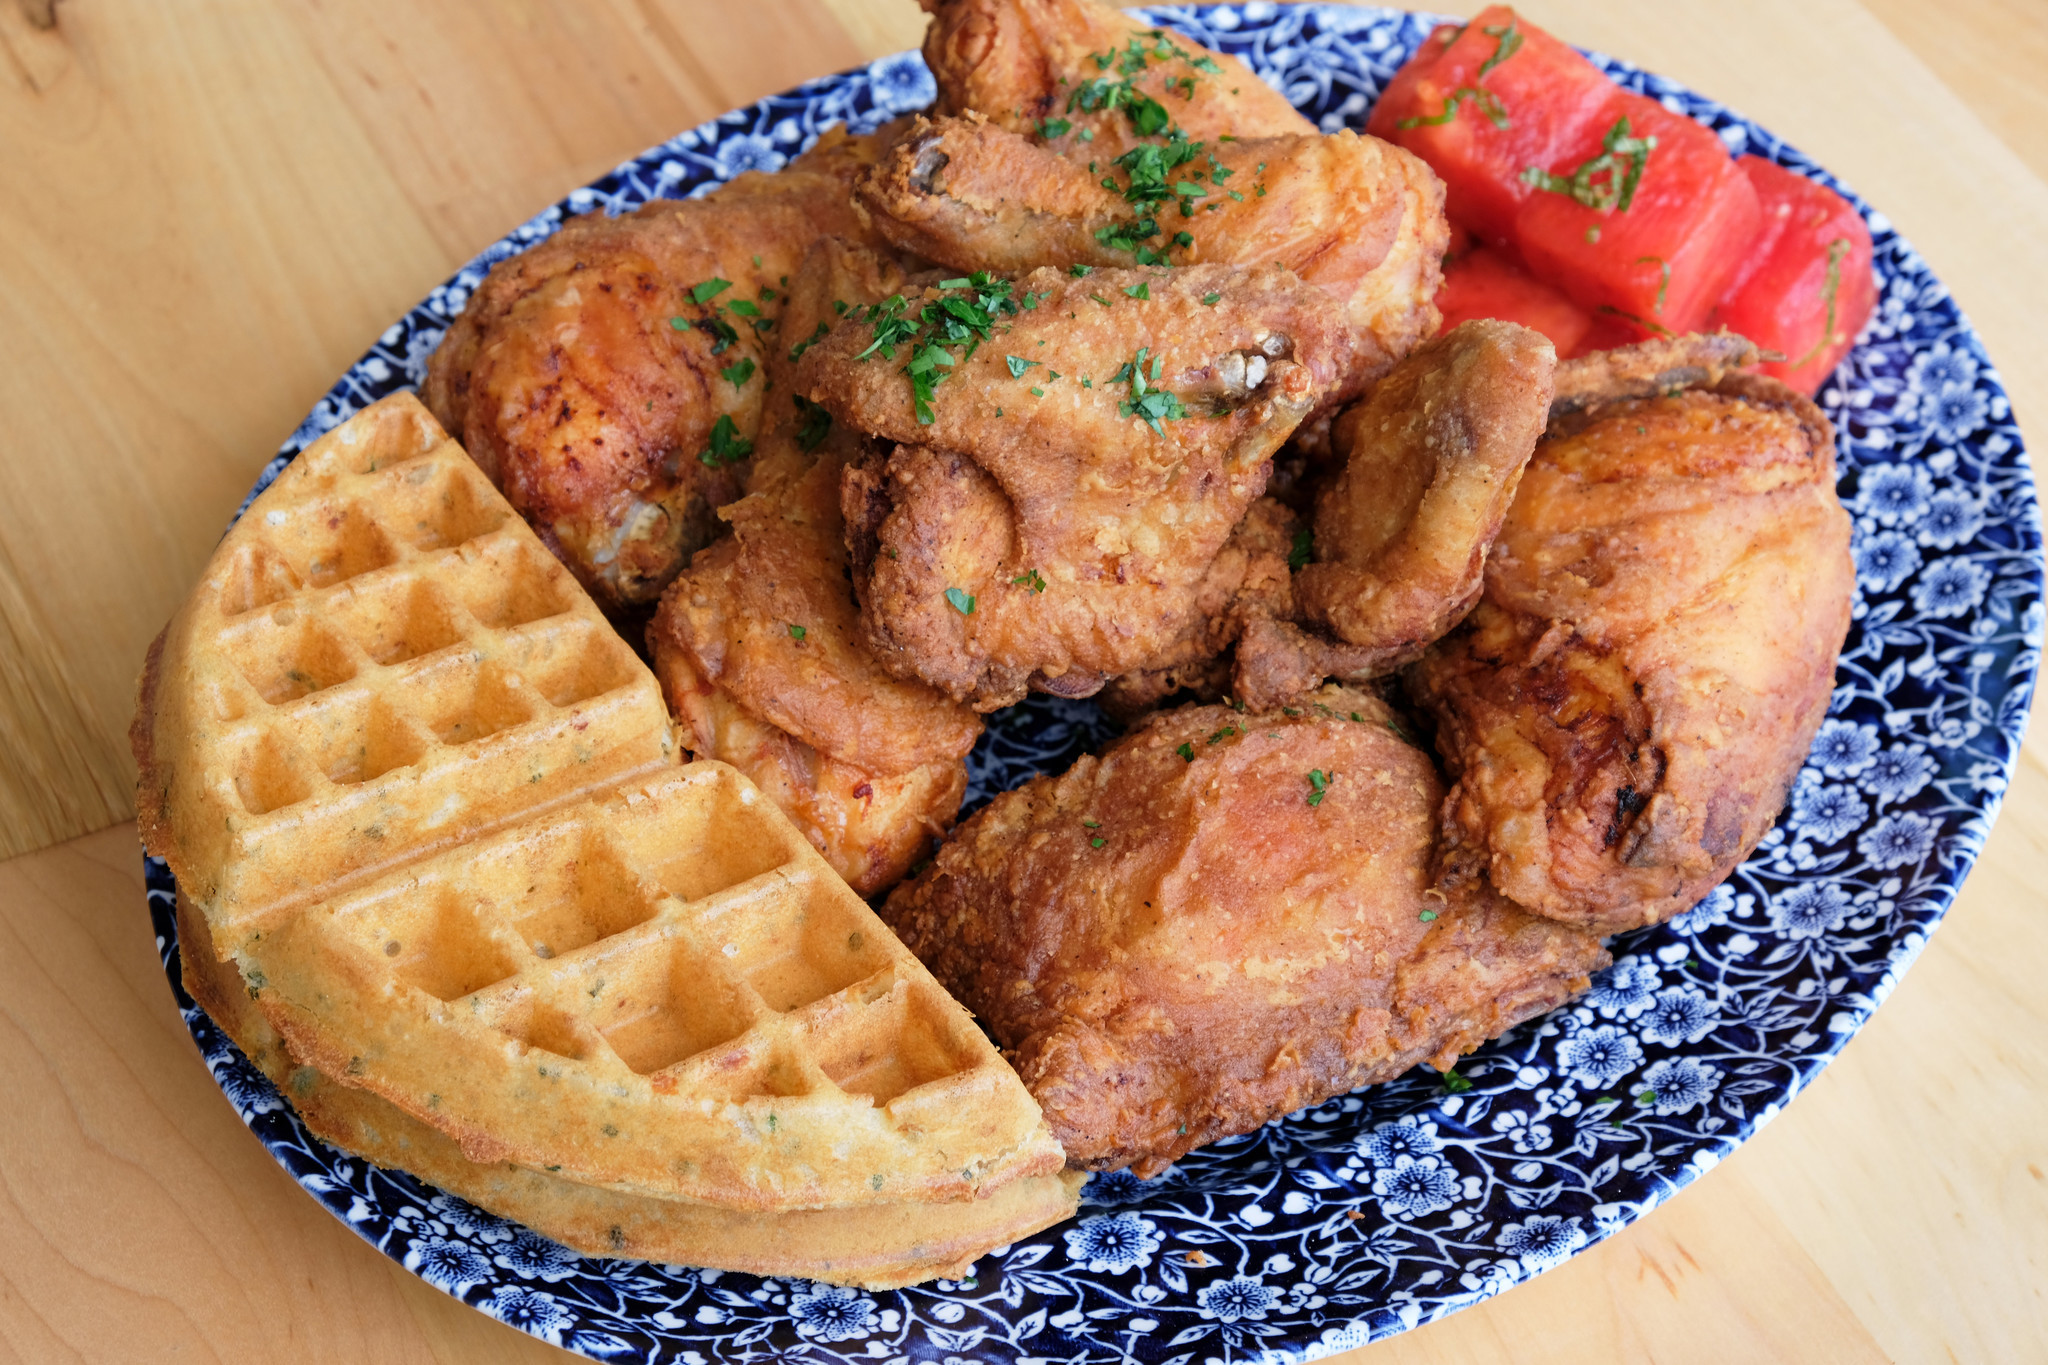 A plate of fried chicken and cheddar waffles from Yardbird Southern Table and Bar at the Beverly Cen